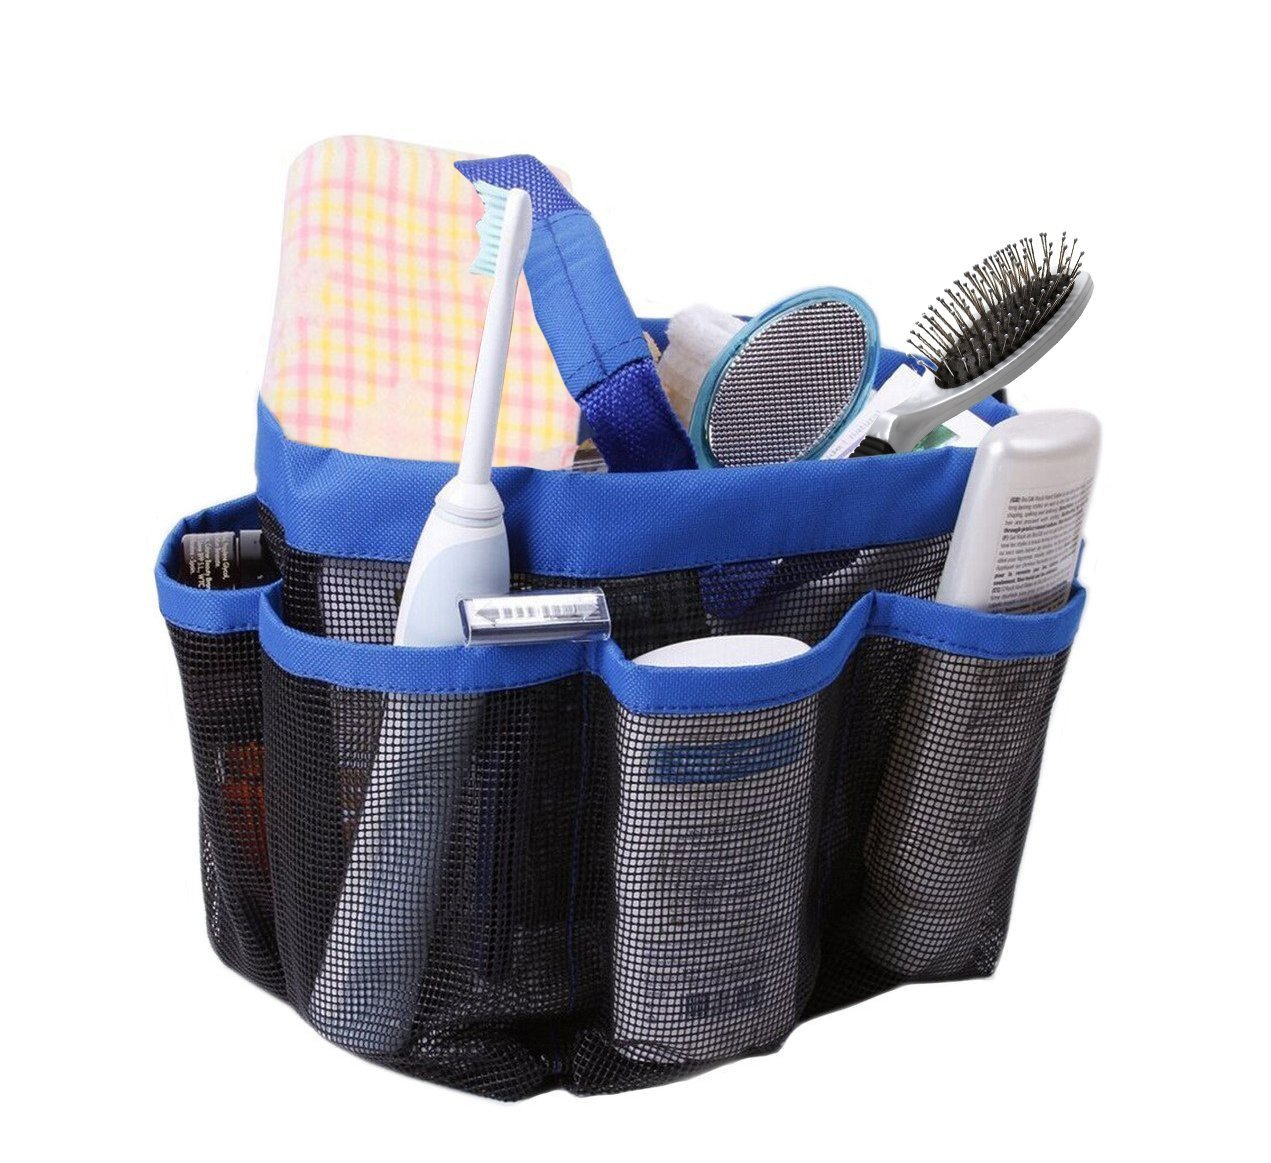 Quick Dry Hanging Toiletry and Bath Organizer with 8 Storage Compartments, Shower Tote, Mesh Shower Caddy, Perfect Dorm, Gym, Camp & Travel Tote Bag